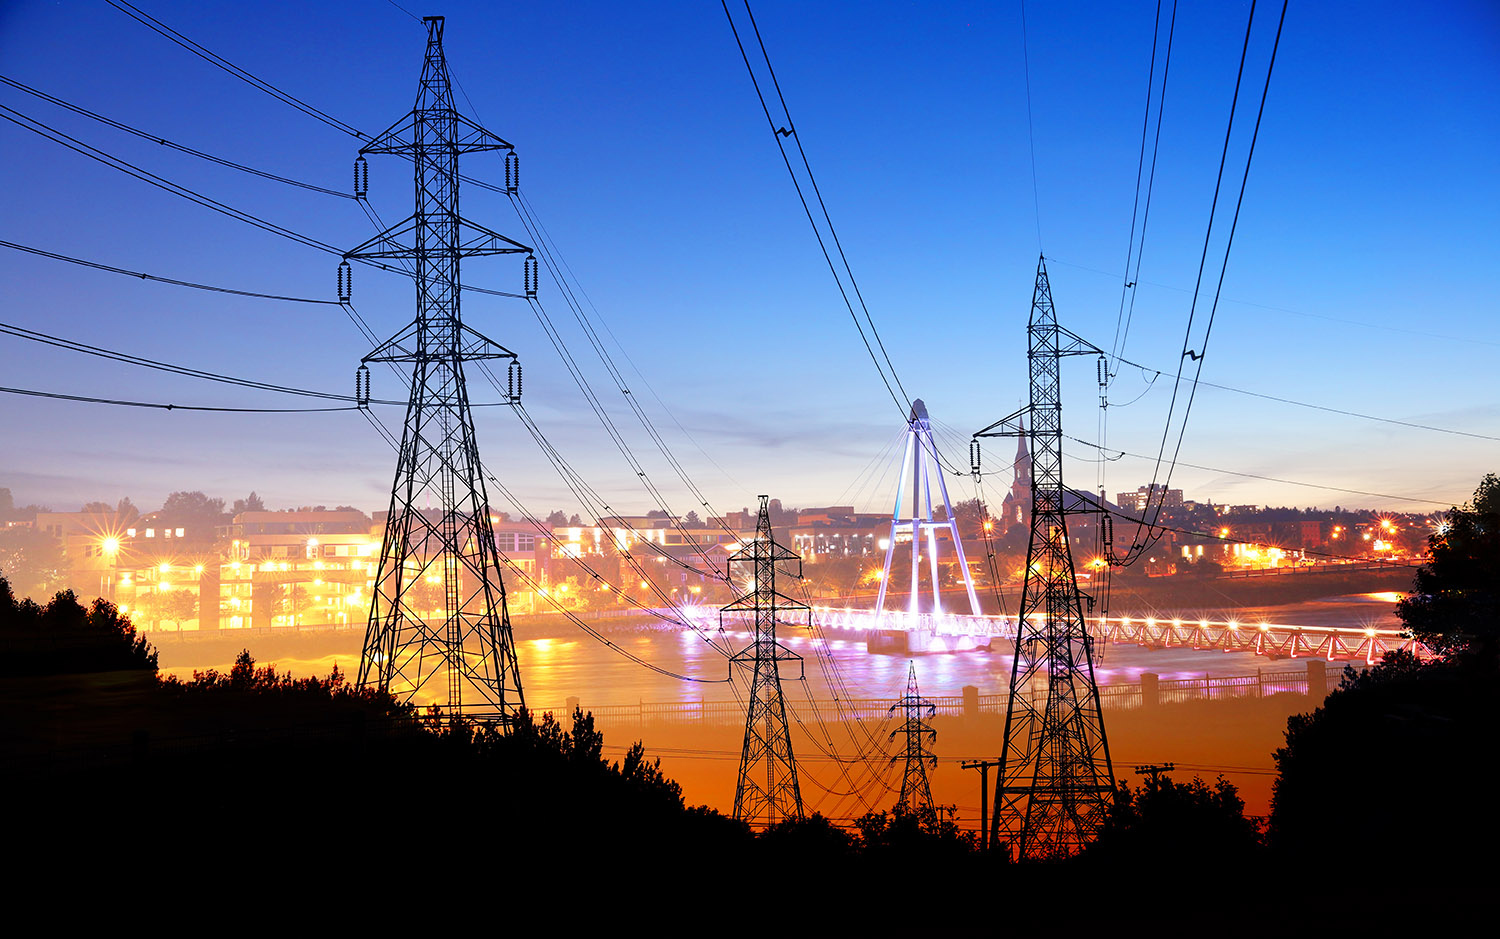 Small Town Electrification at Sunset - Royalty-Free Stock Imagery